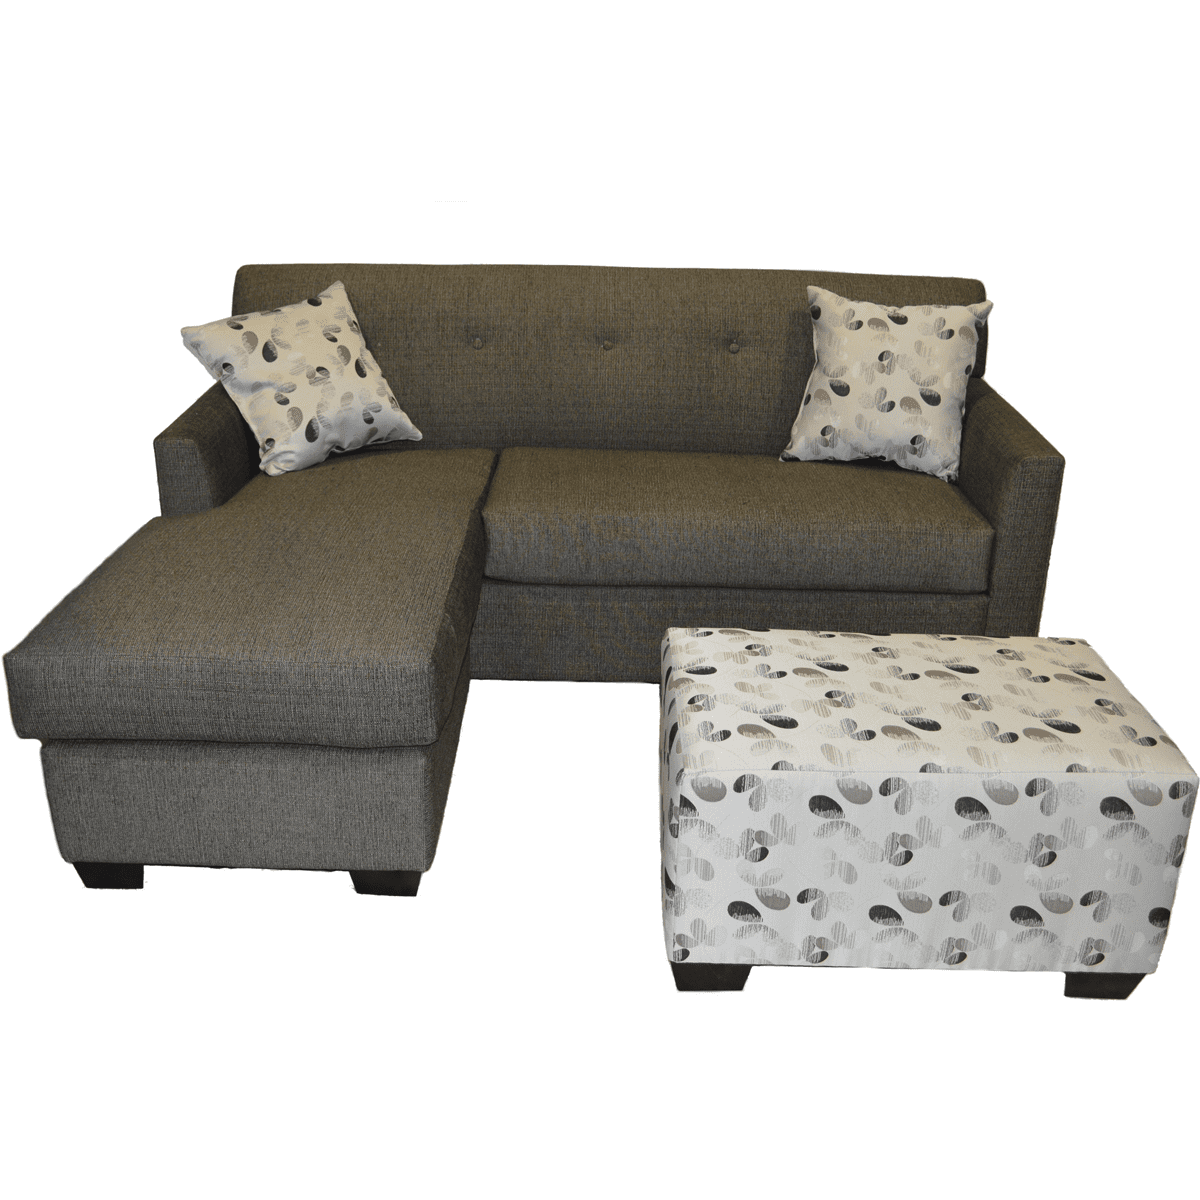 2047 Model Custom Made Sectional Sofa Condo Love